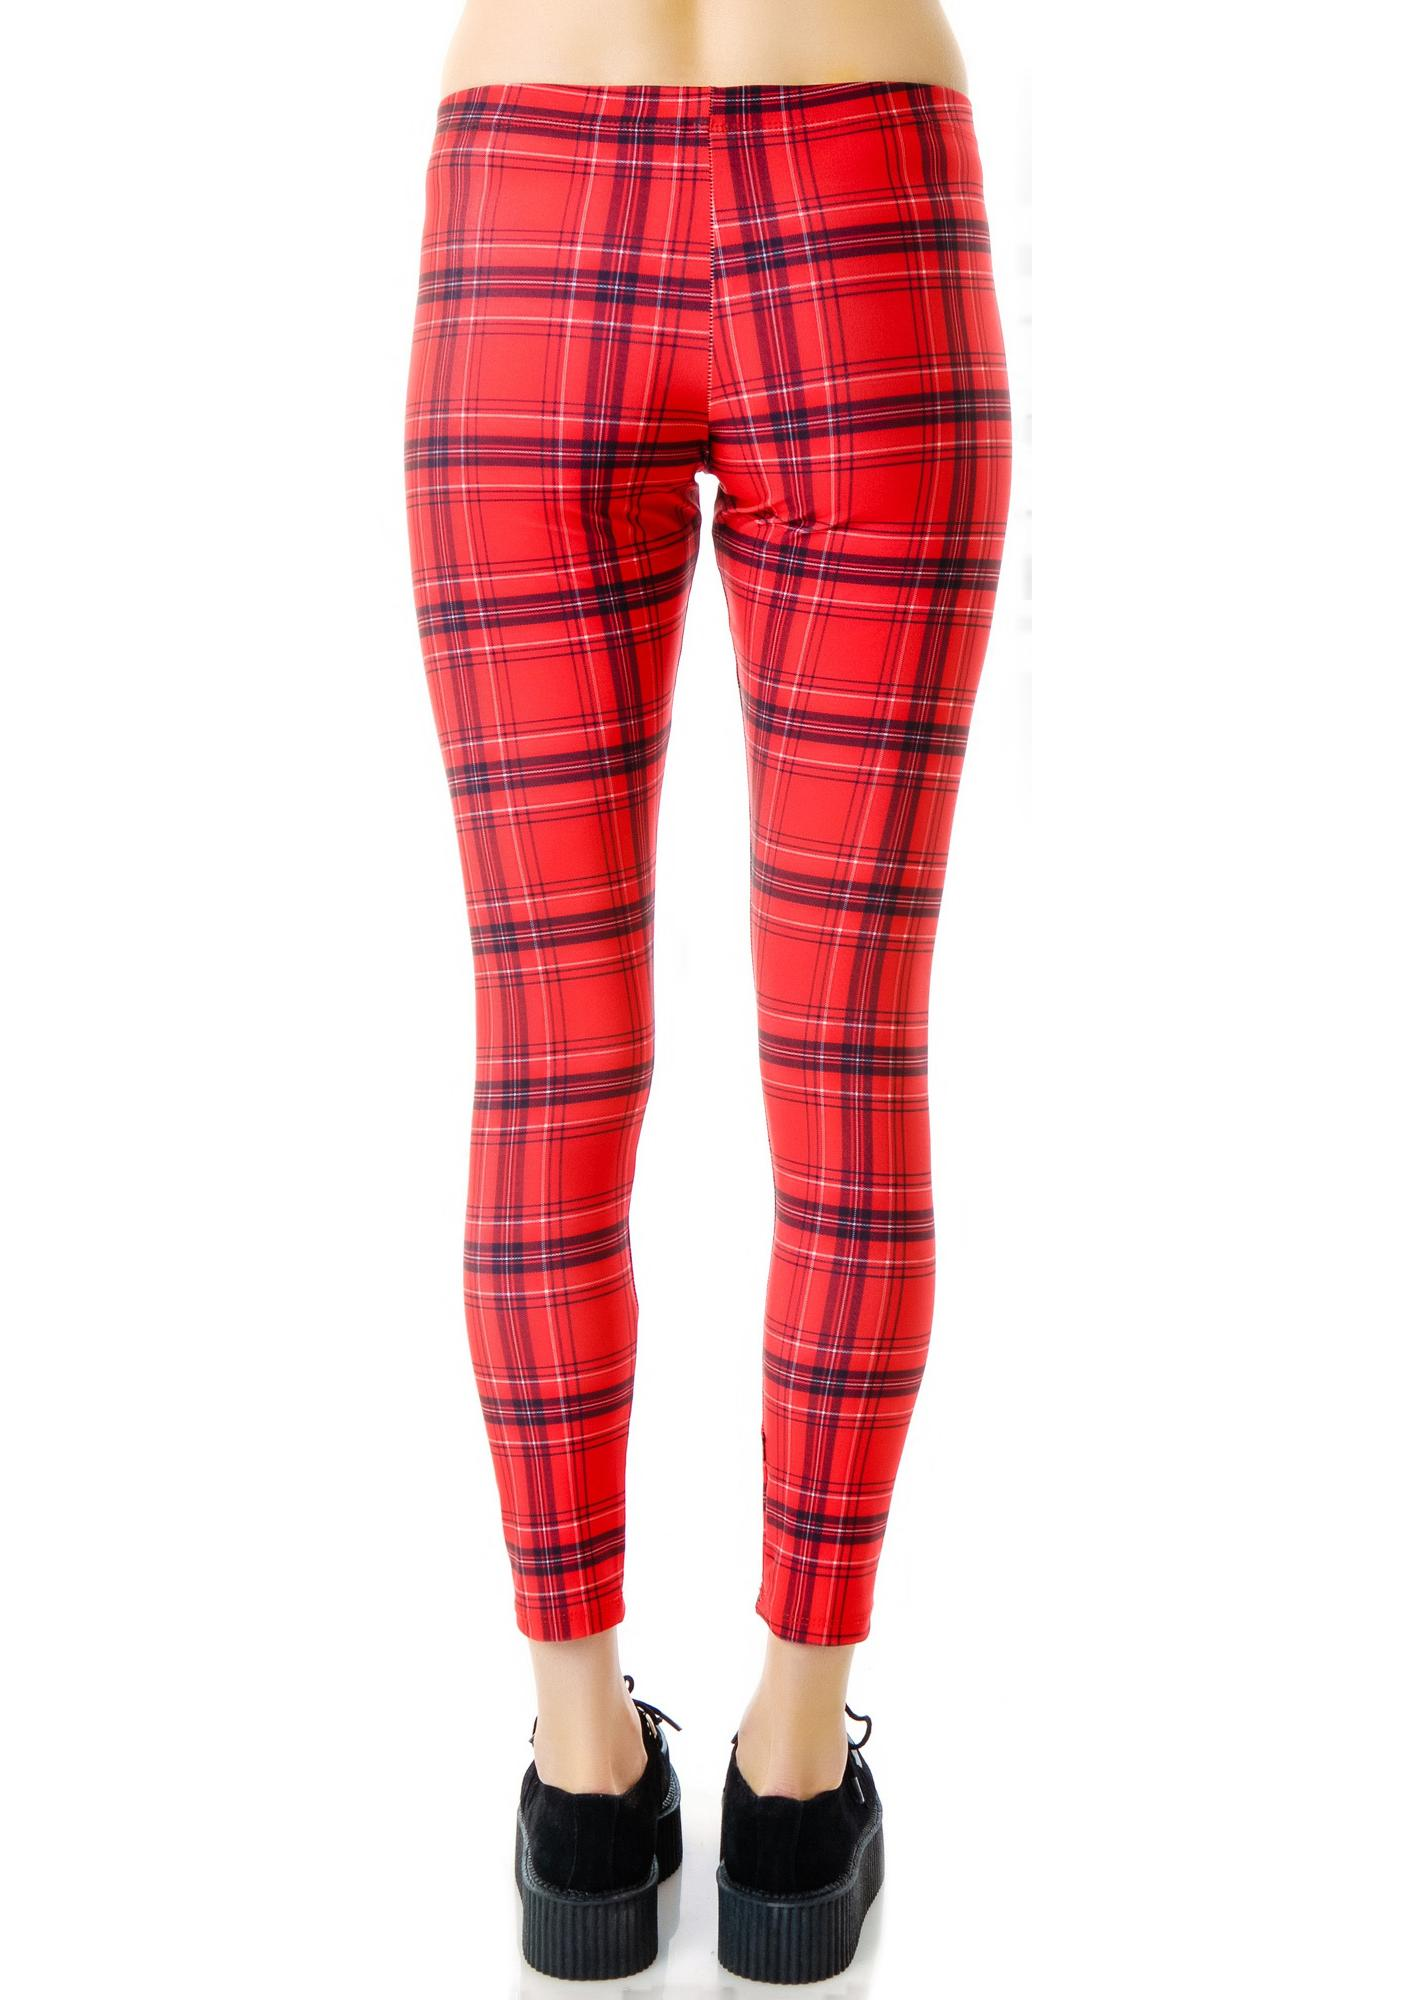 Zara Terez Red Plaid Leggings